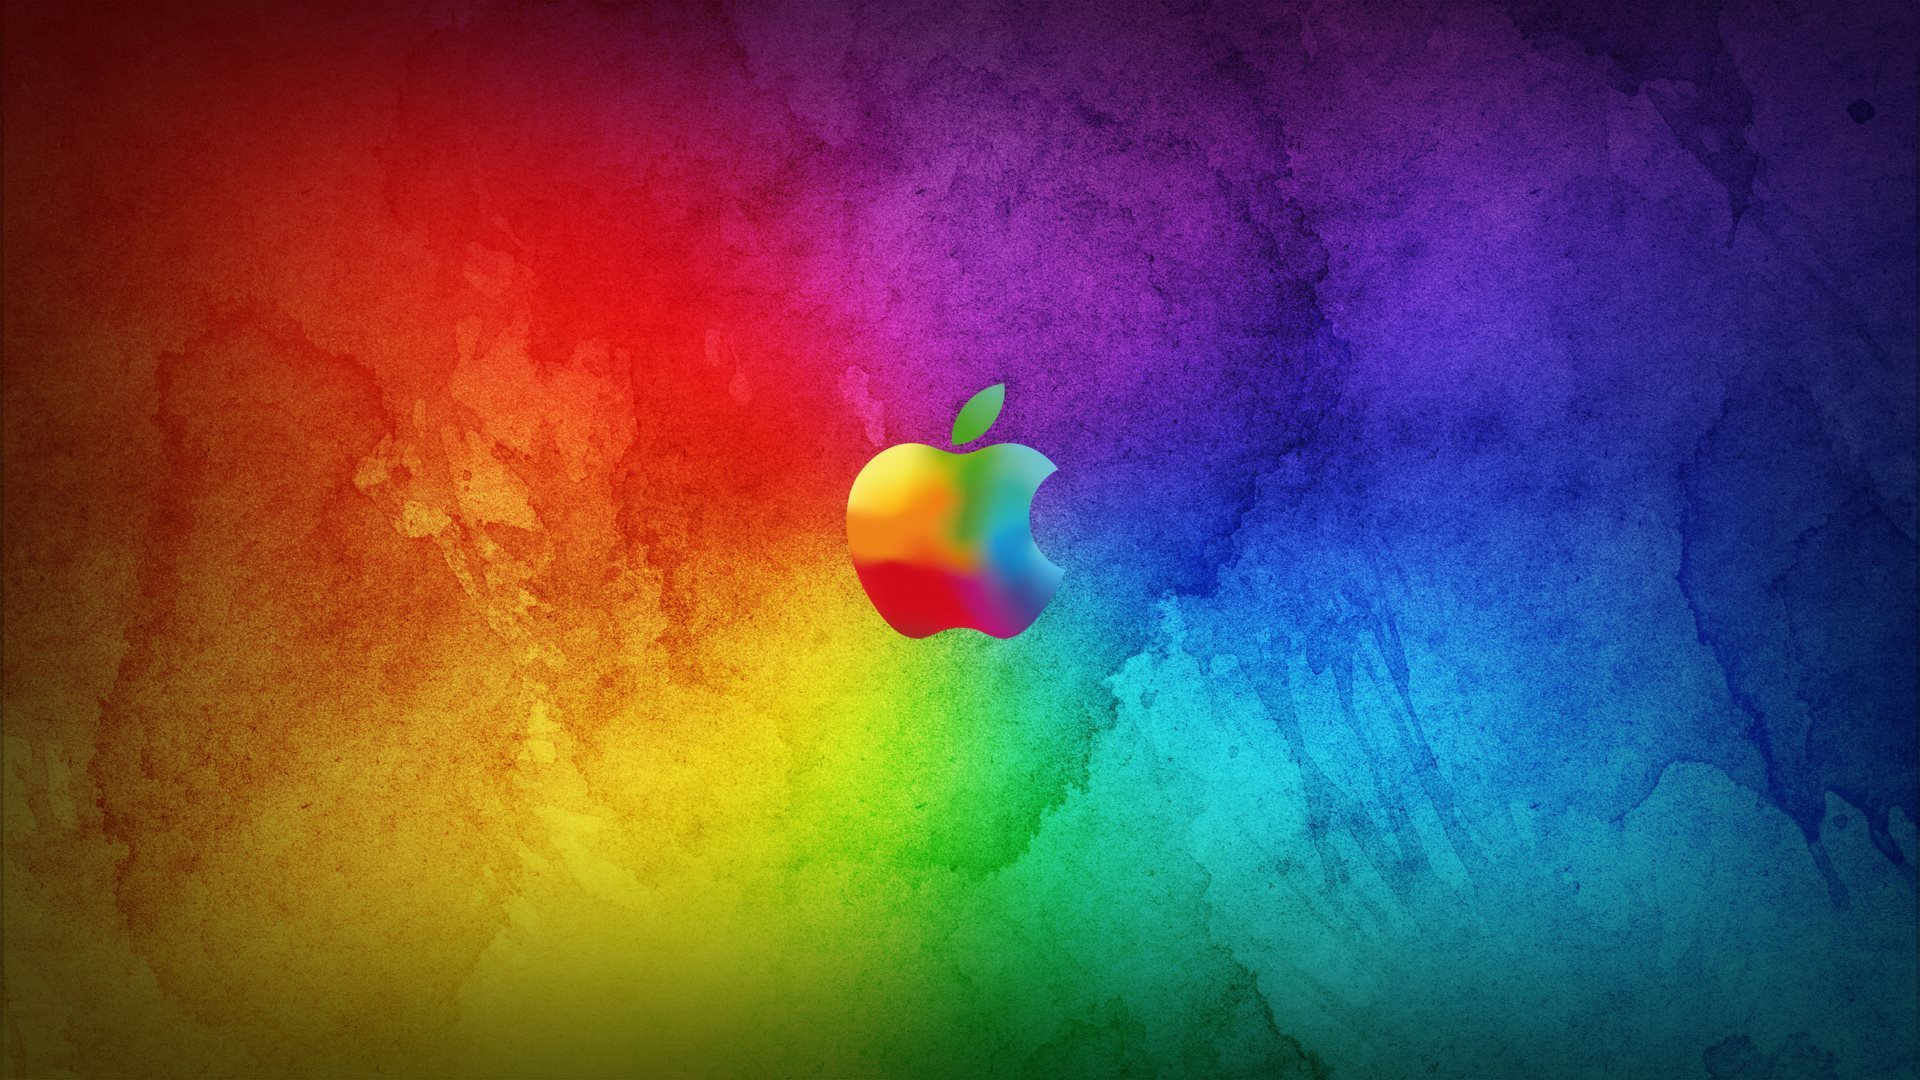 colorful apple wallpaper 45171